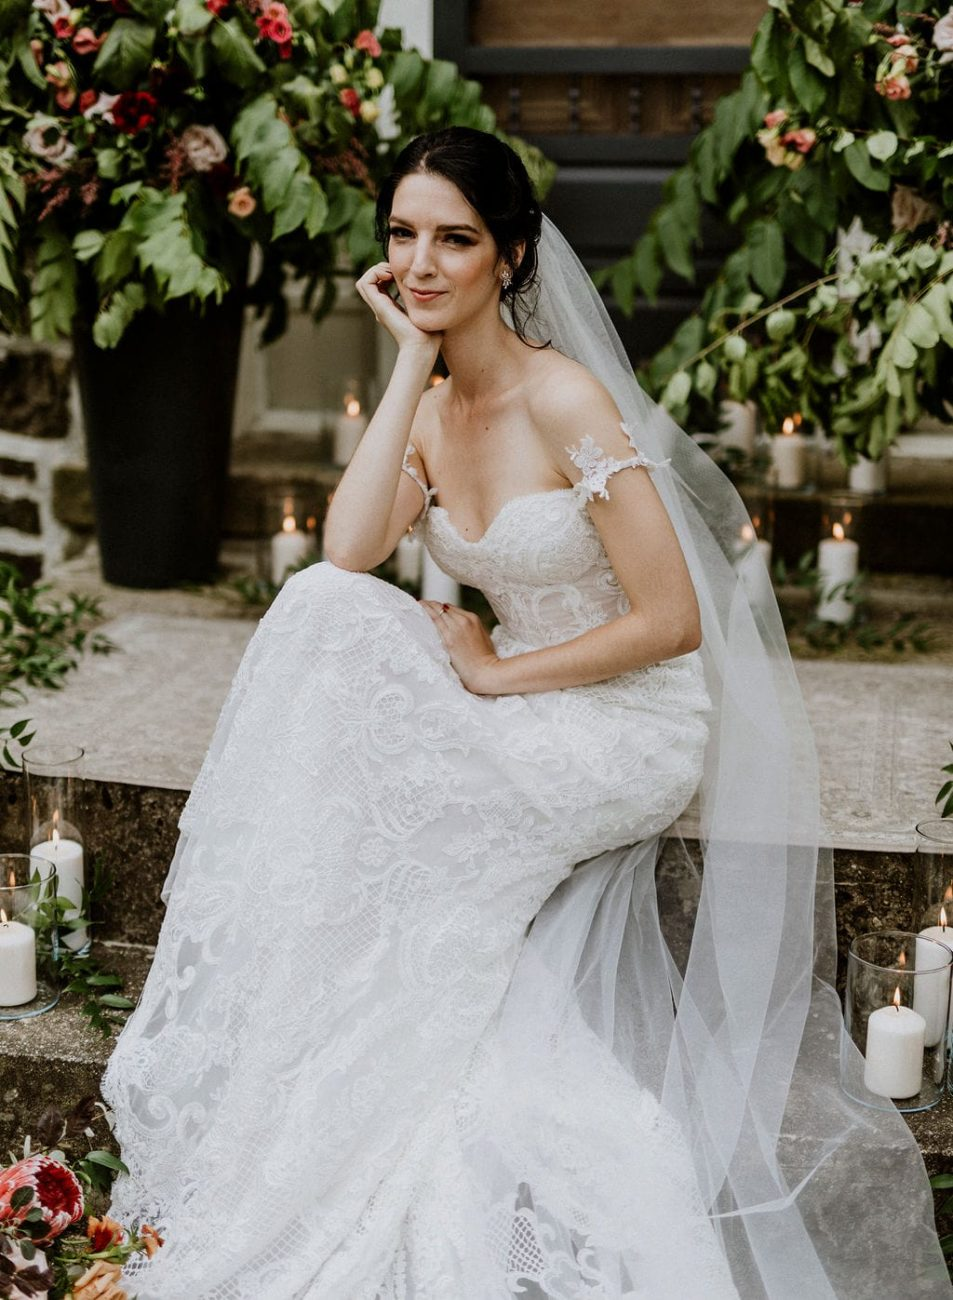 Smiling bride sitting on front steps with candles and flowers around